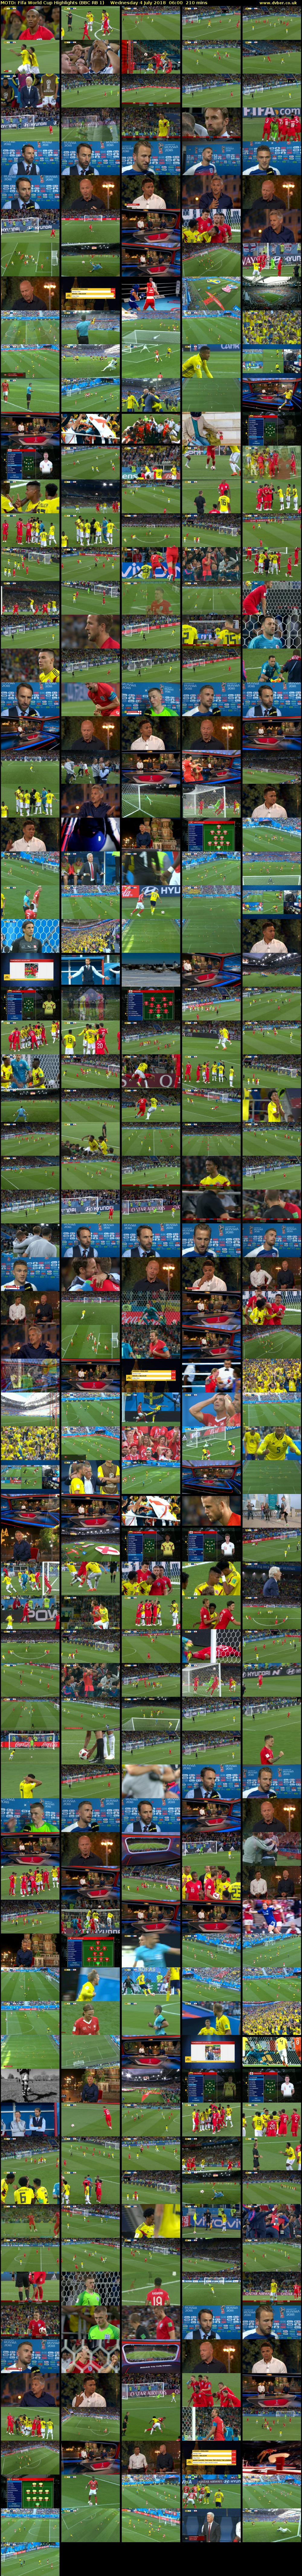 MOTD: Fifa World Cup Highlights (BBC RB 1) Wednesday 4 July 2018 06:00 - 09:30